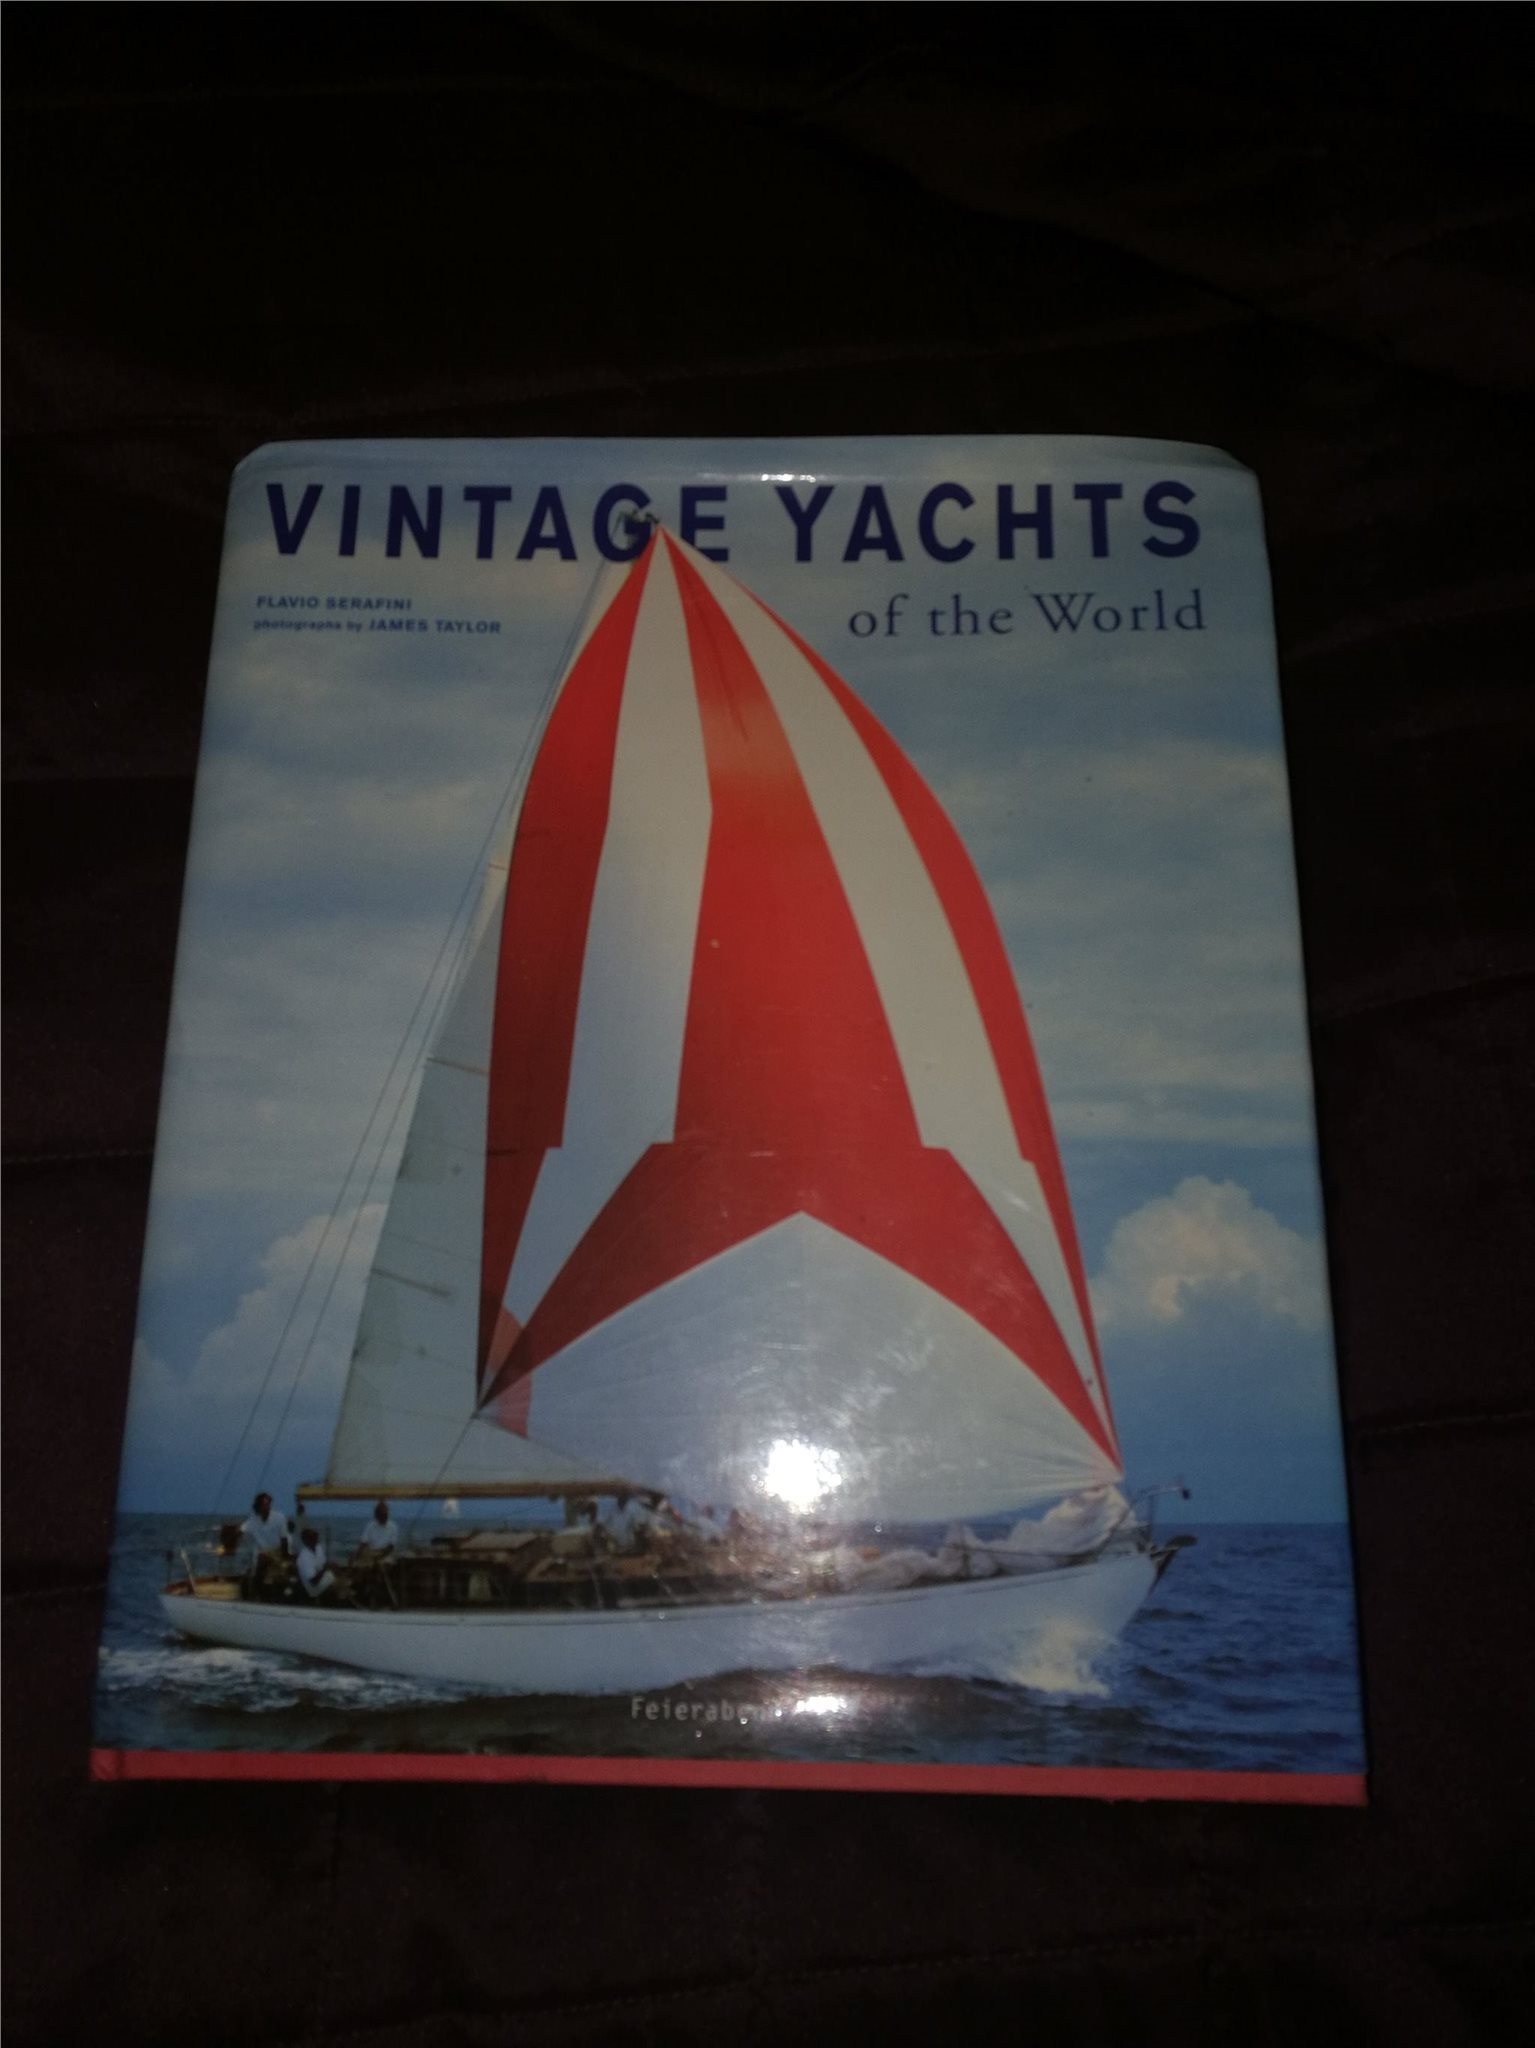 Vintage yachts of the world.